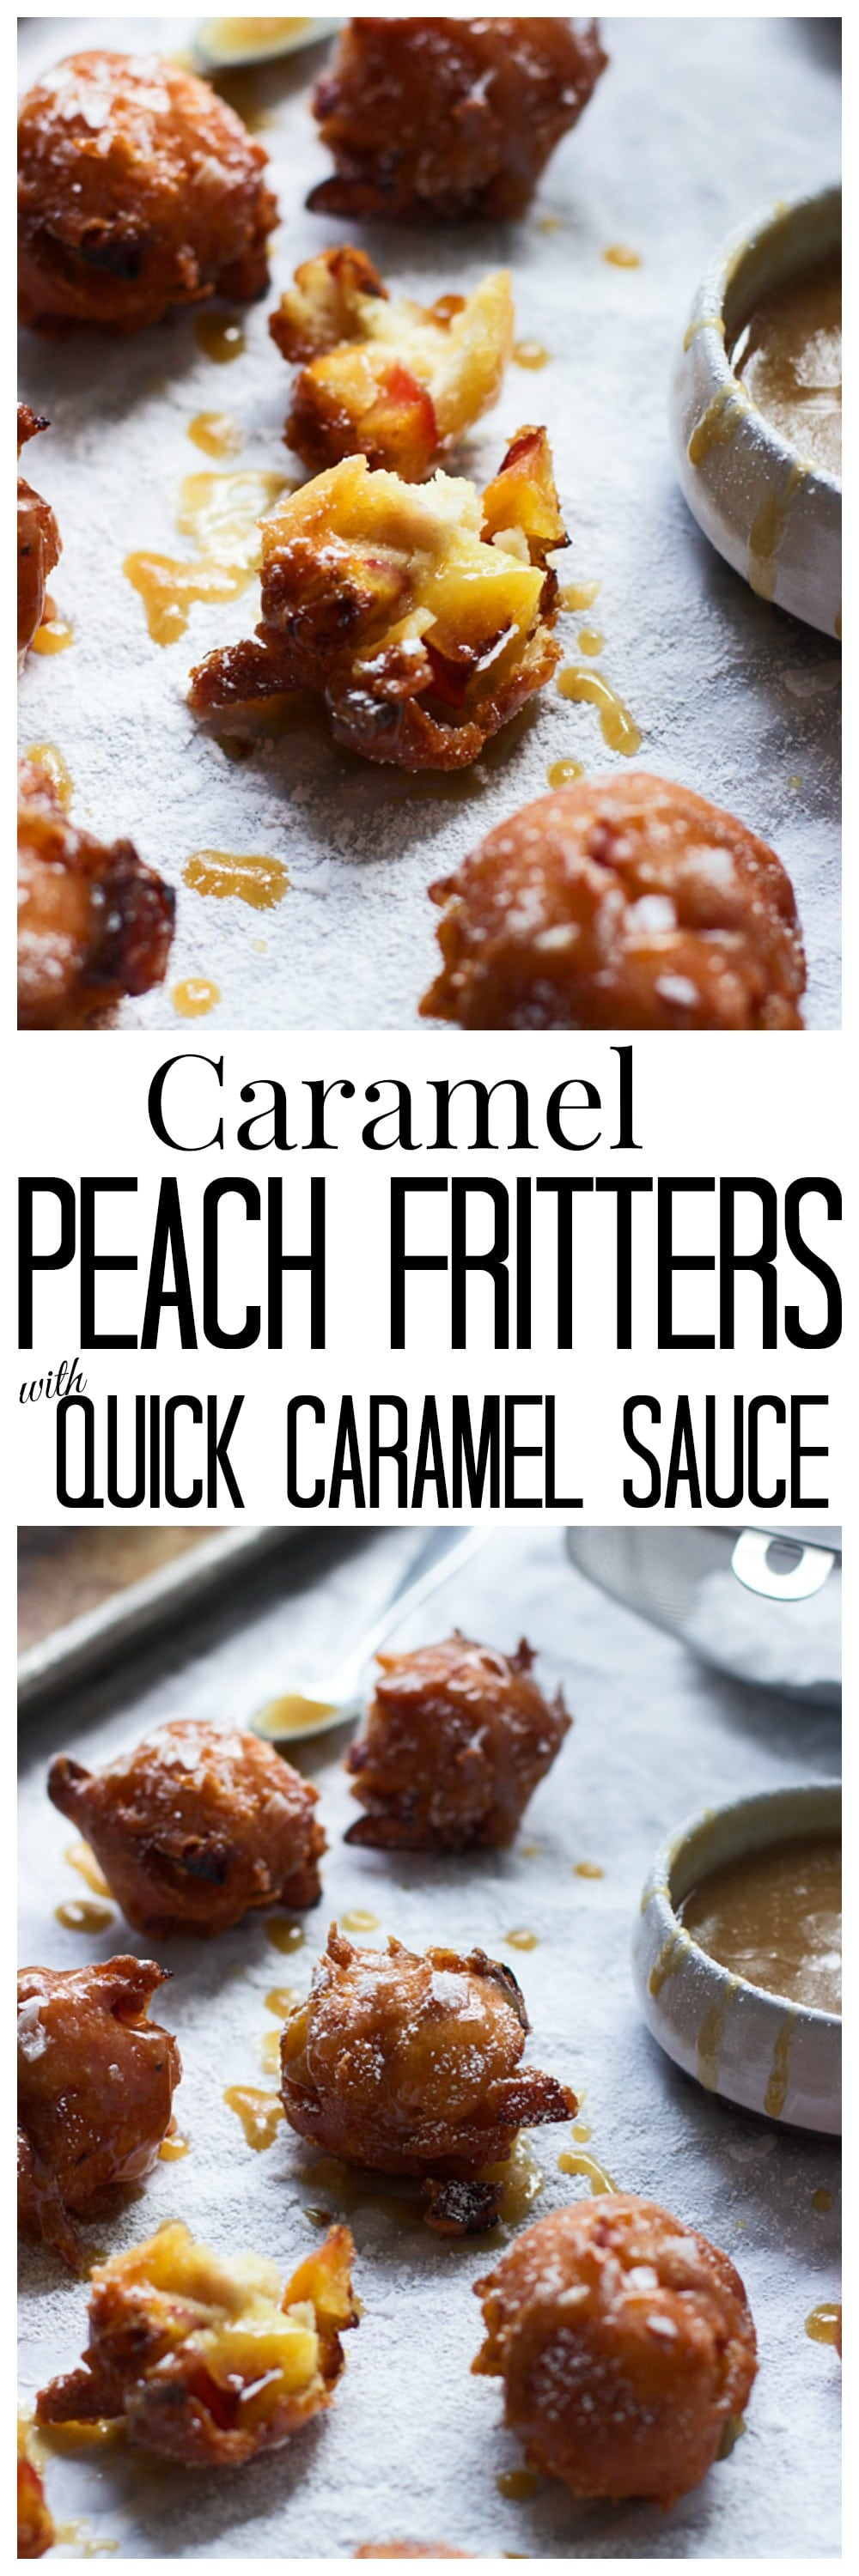 Caramel Peach Fritters with Quick Caramel Sauce